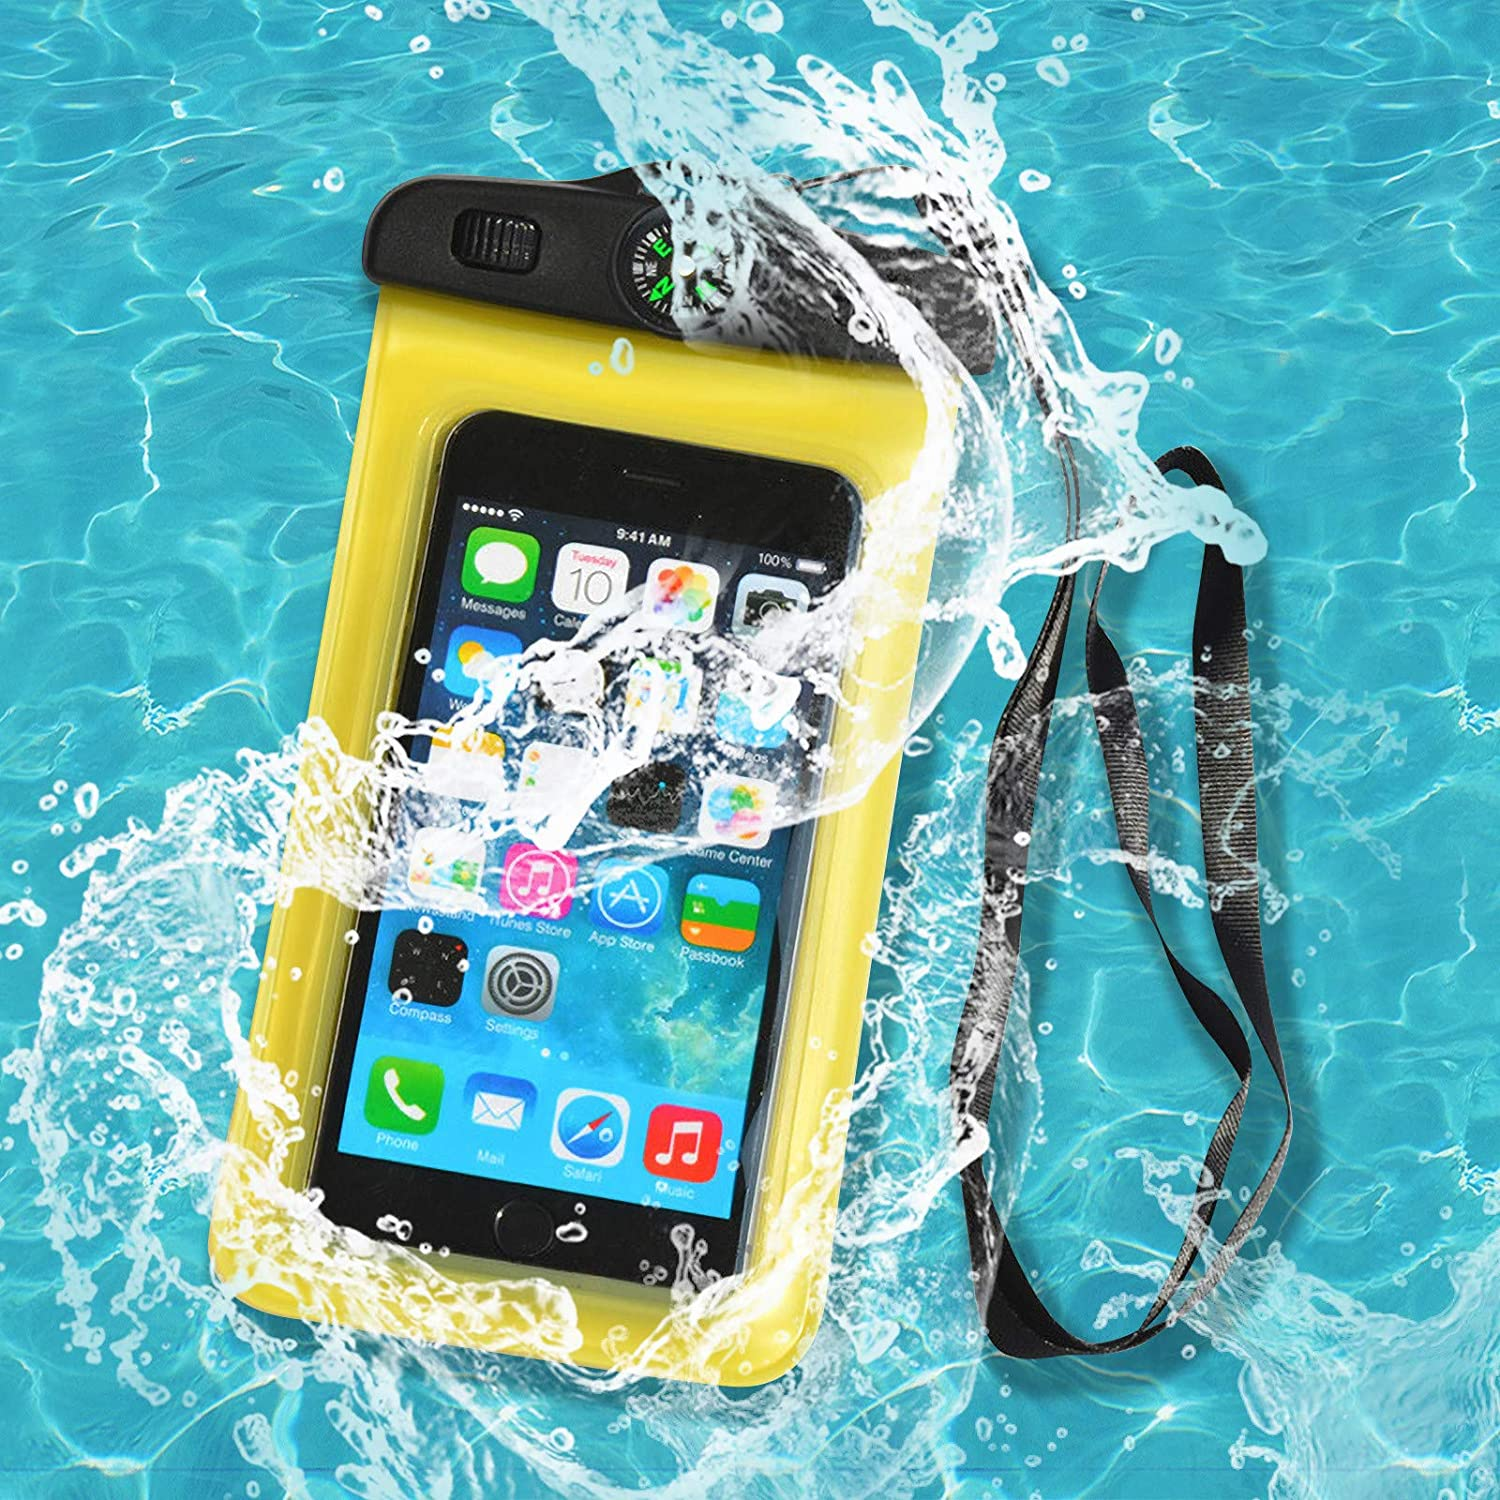 Waterproof Phone Case,Cellphone Dry Bag Case for iPhone 12/11/Xs/XS Max/XR/X, iPhone 8/8 Plus/7/7 Plus/6/6s, Samsung Galaxy S9/S8/S7,and Other Phones Up to 6.5''